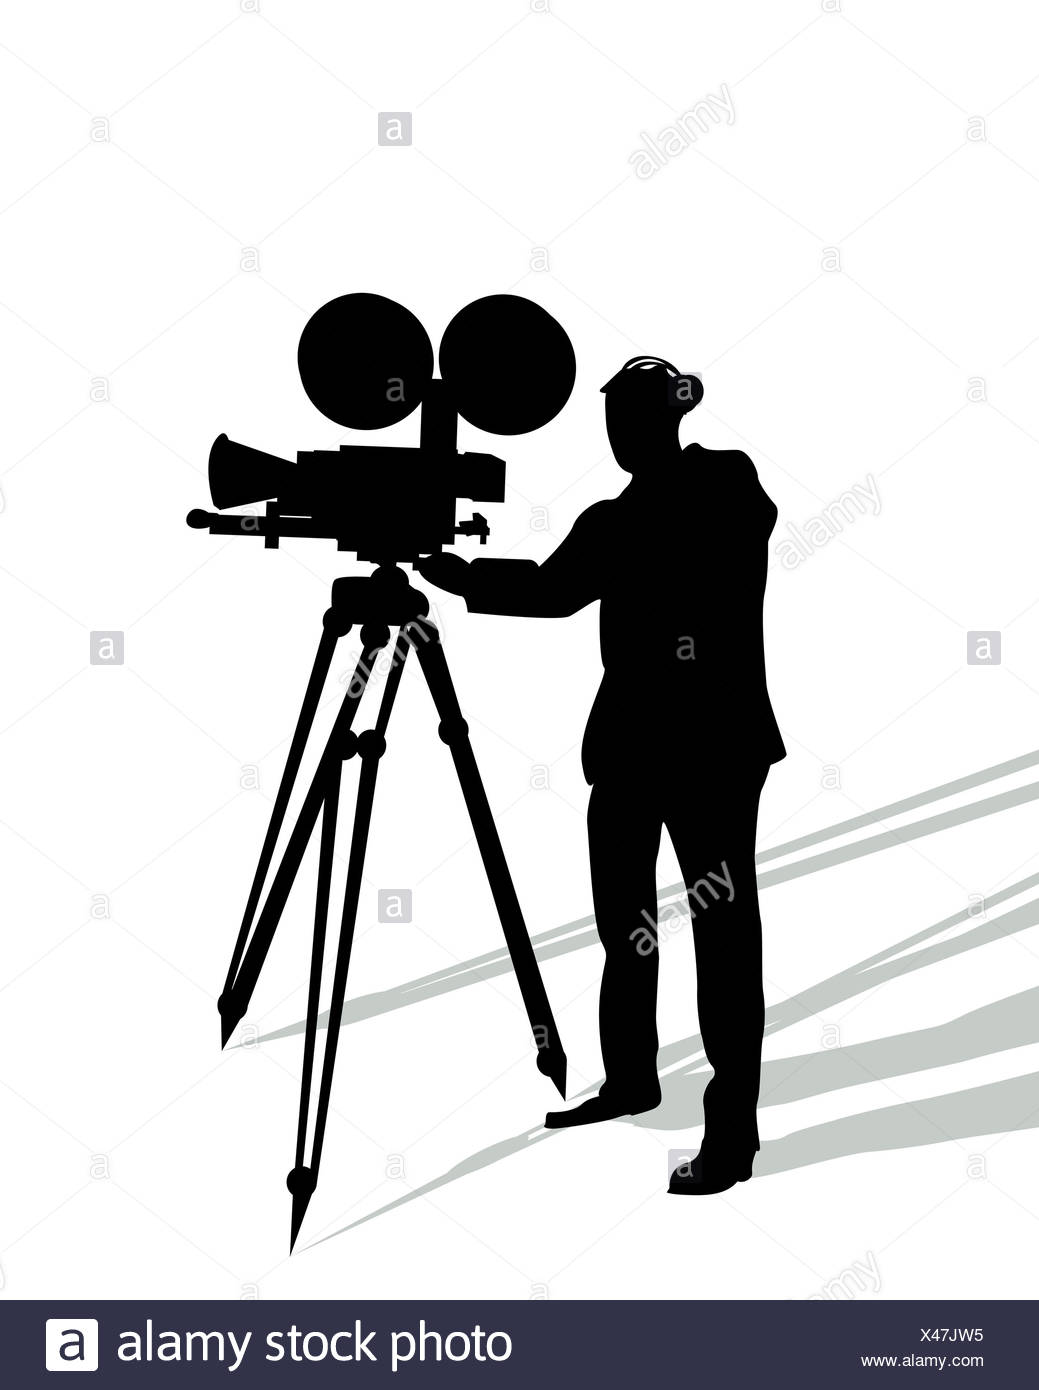 1039x1390 Professional Camera Outline Isolated Background Stock Photos